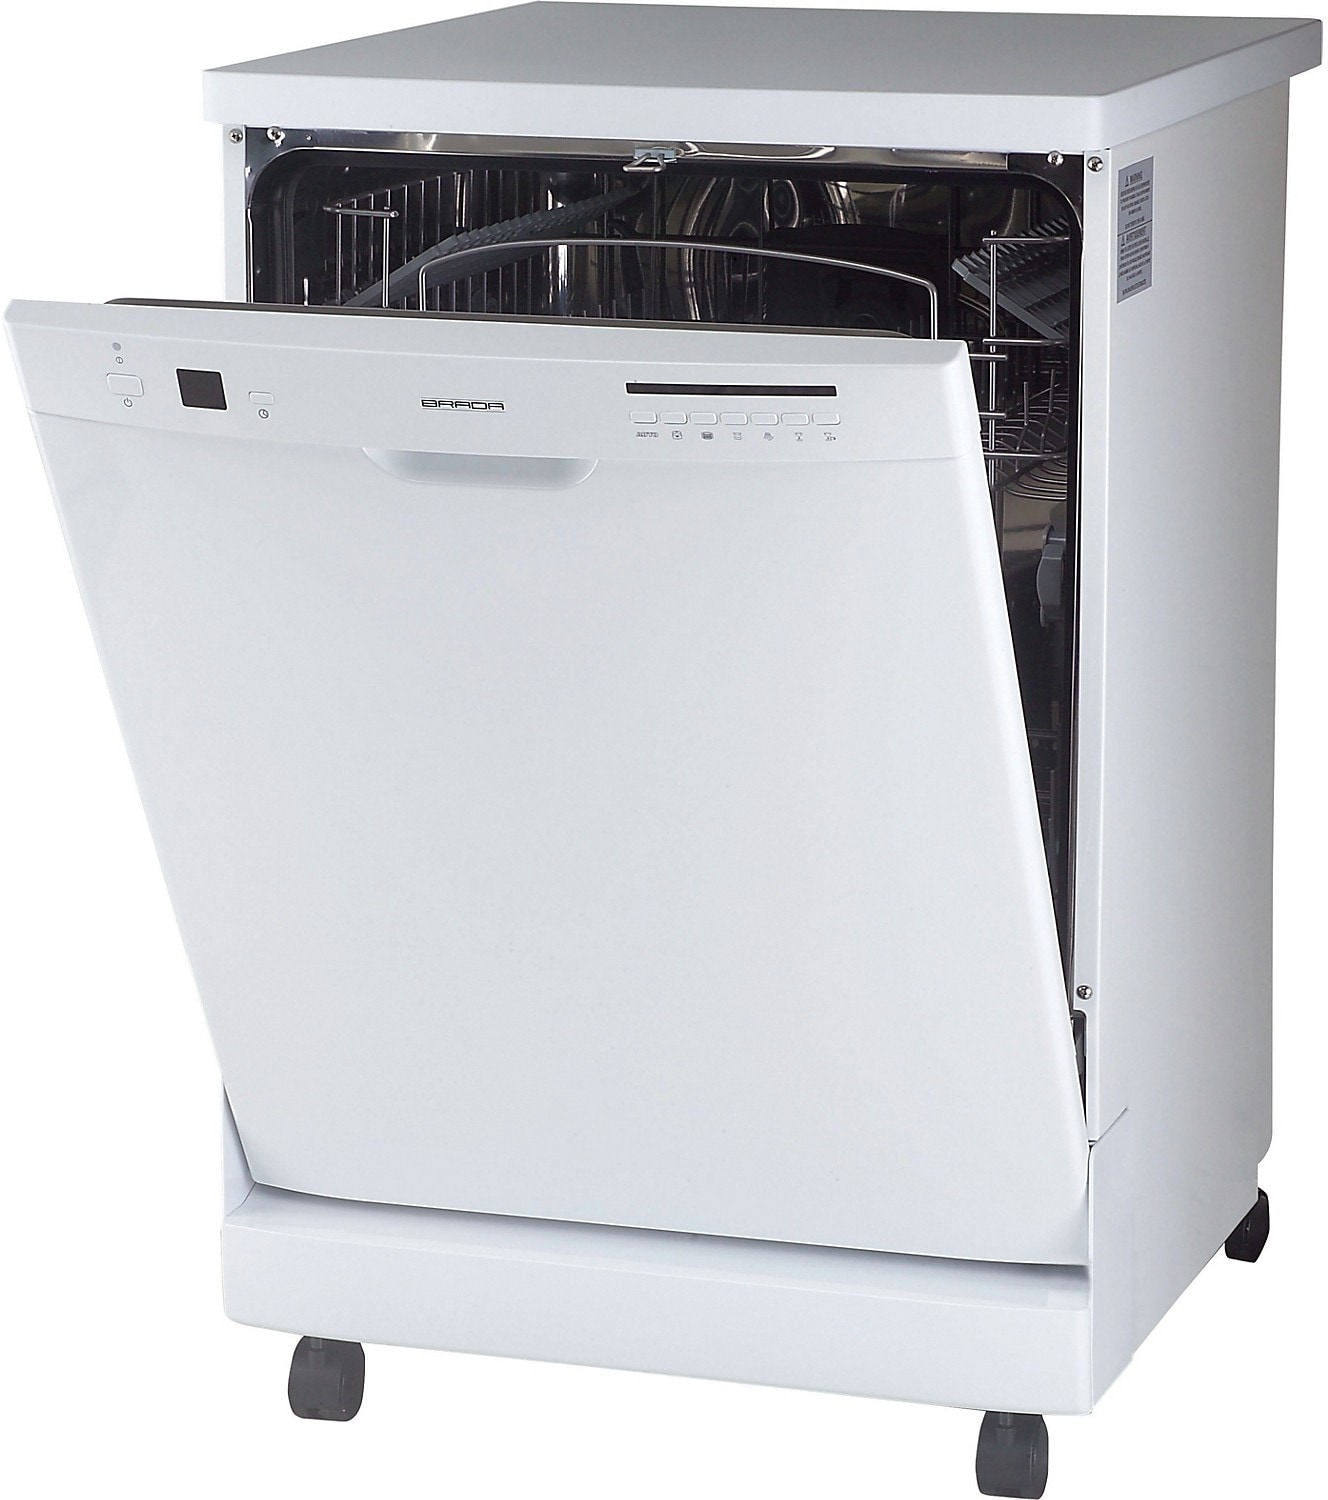 "Clean-Up - Brada 24"" Portable Dishwasher - White"